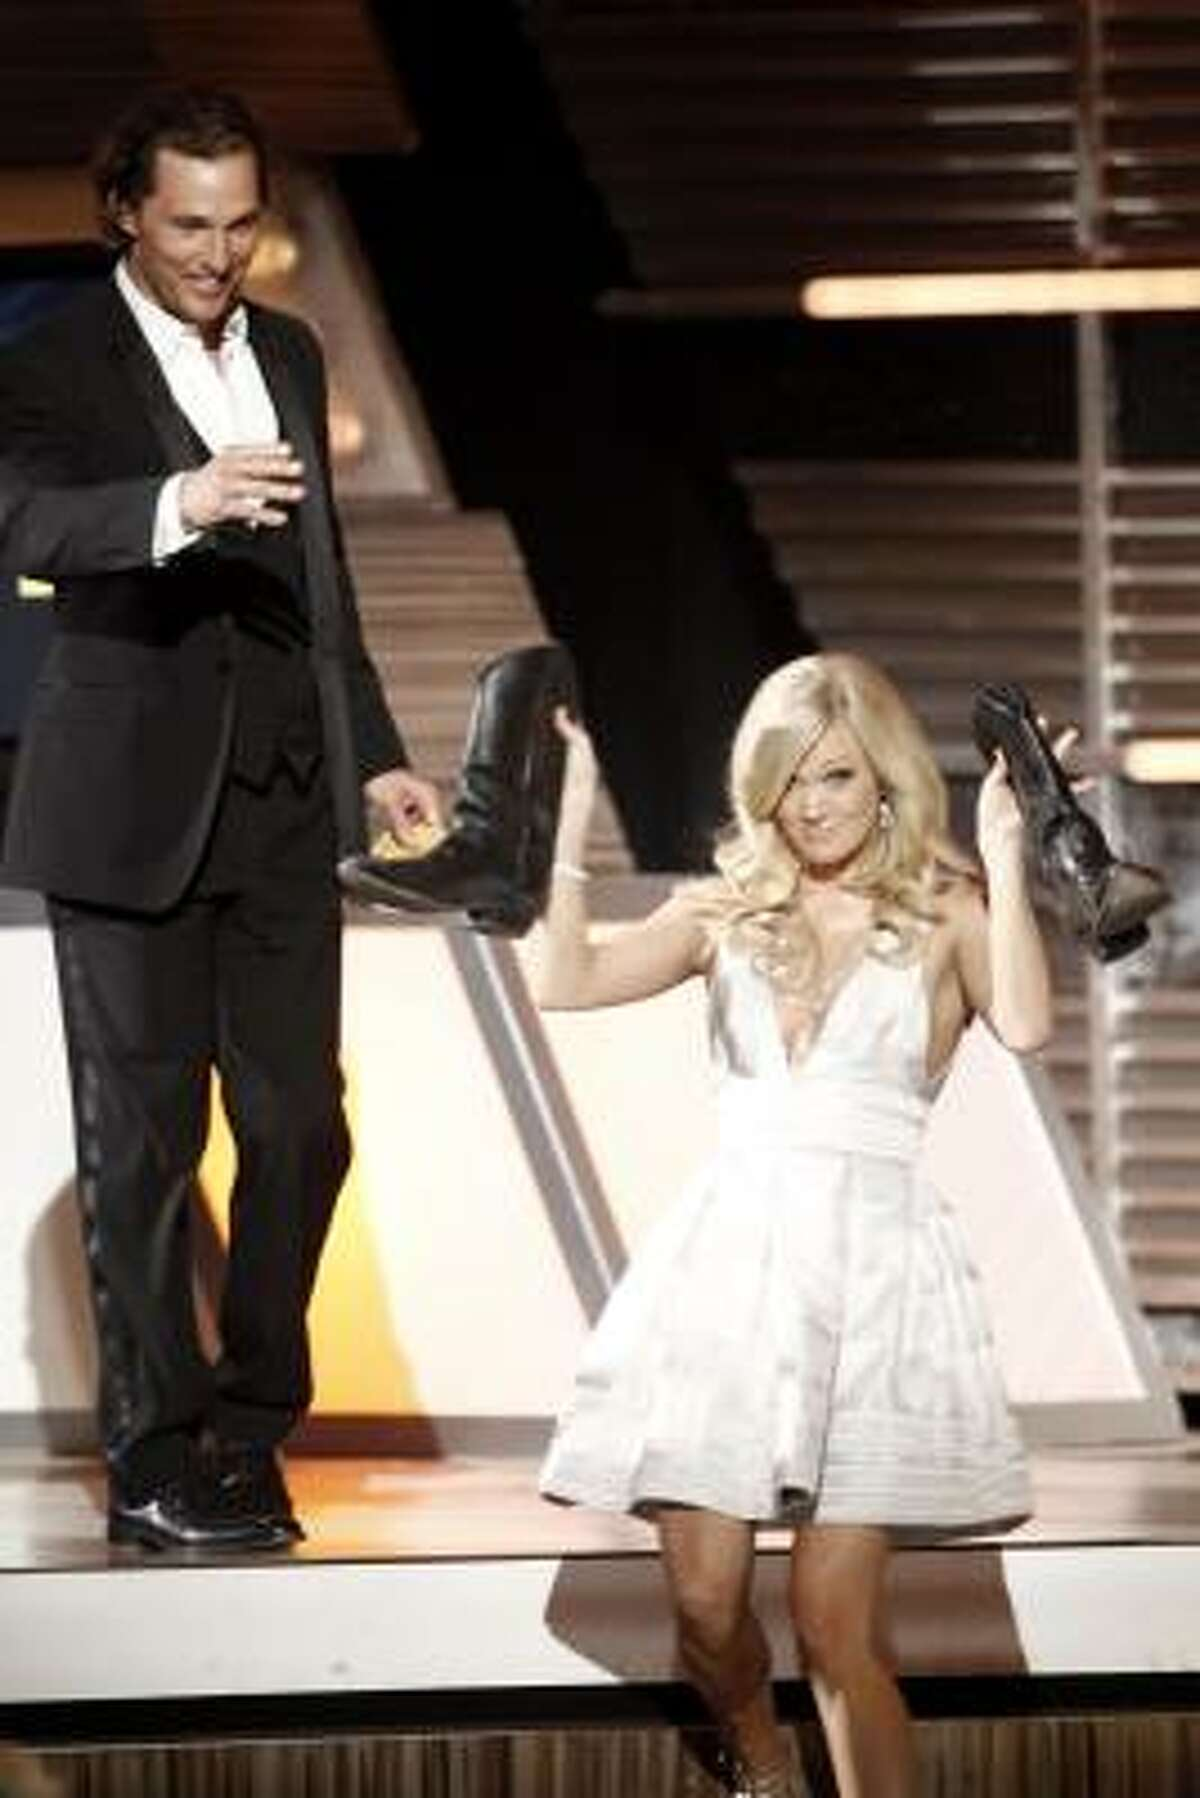 Matthew McConaughey, left, gives Carrie Underwood a pair of boots at the 45th Annual Academy of Country Music Awards.